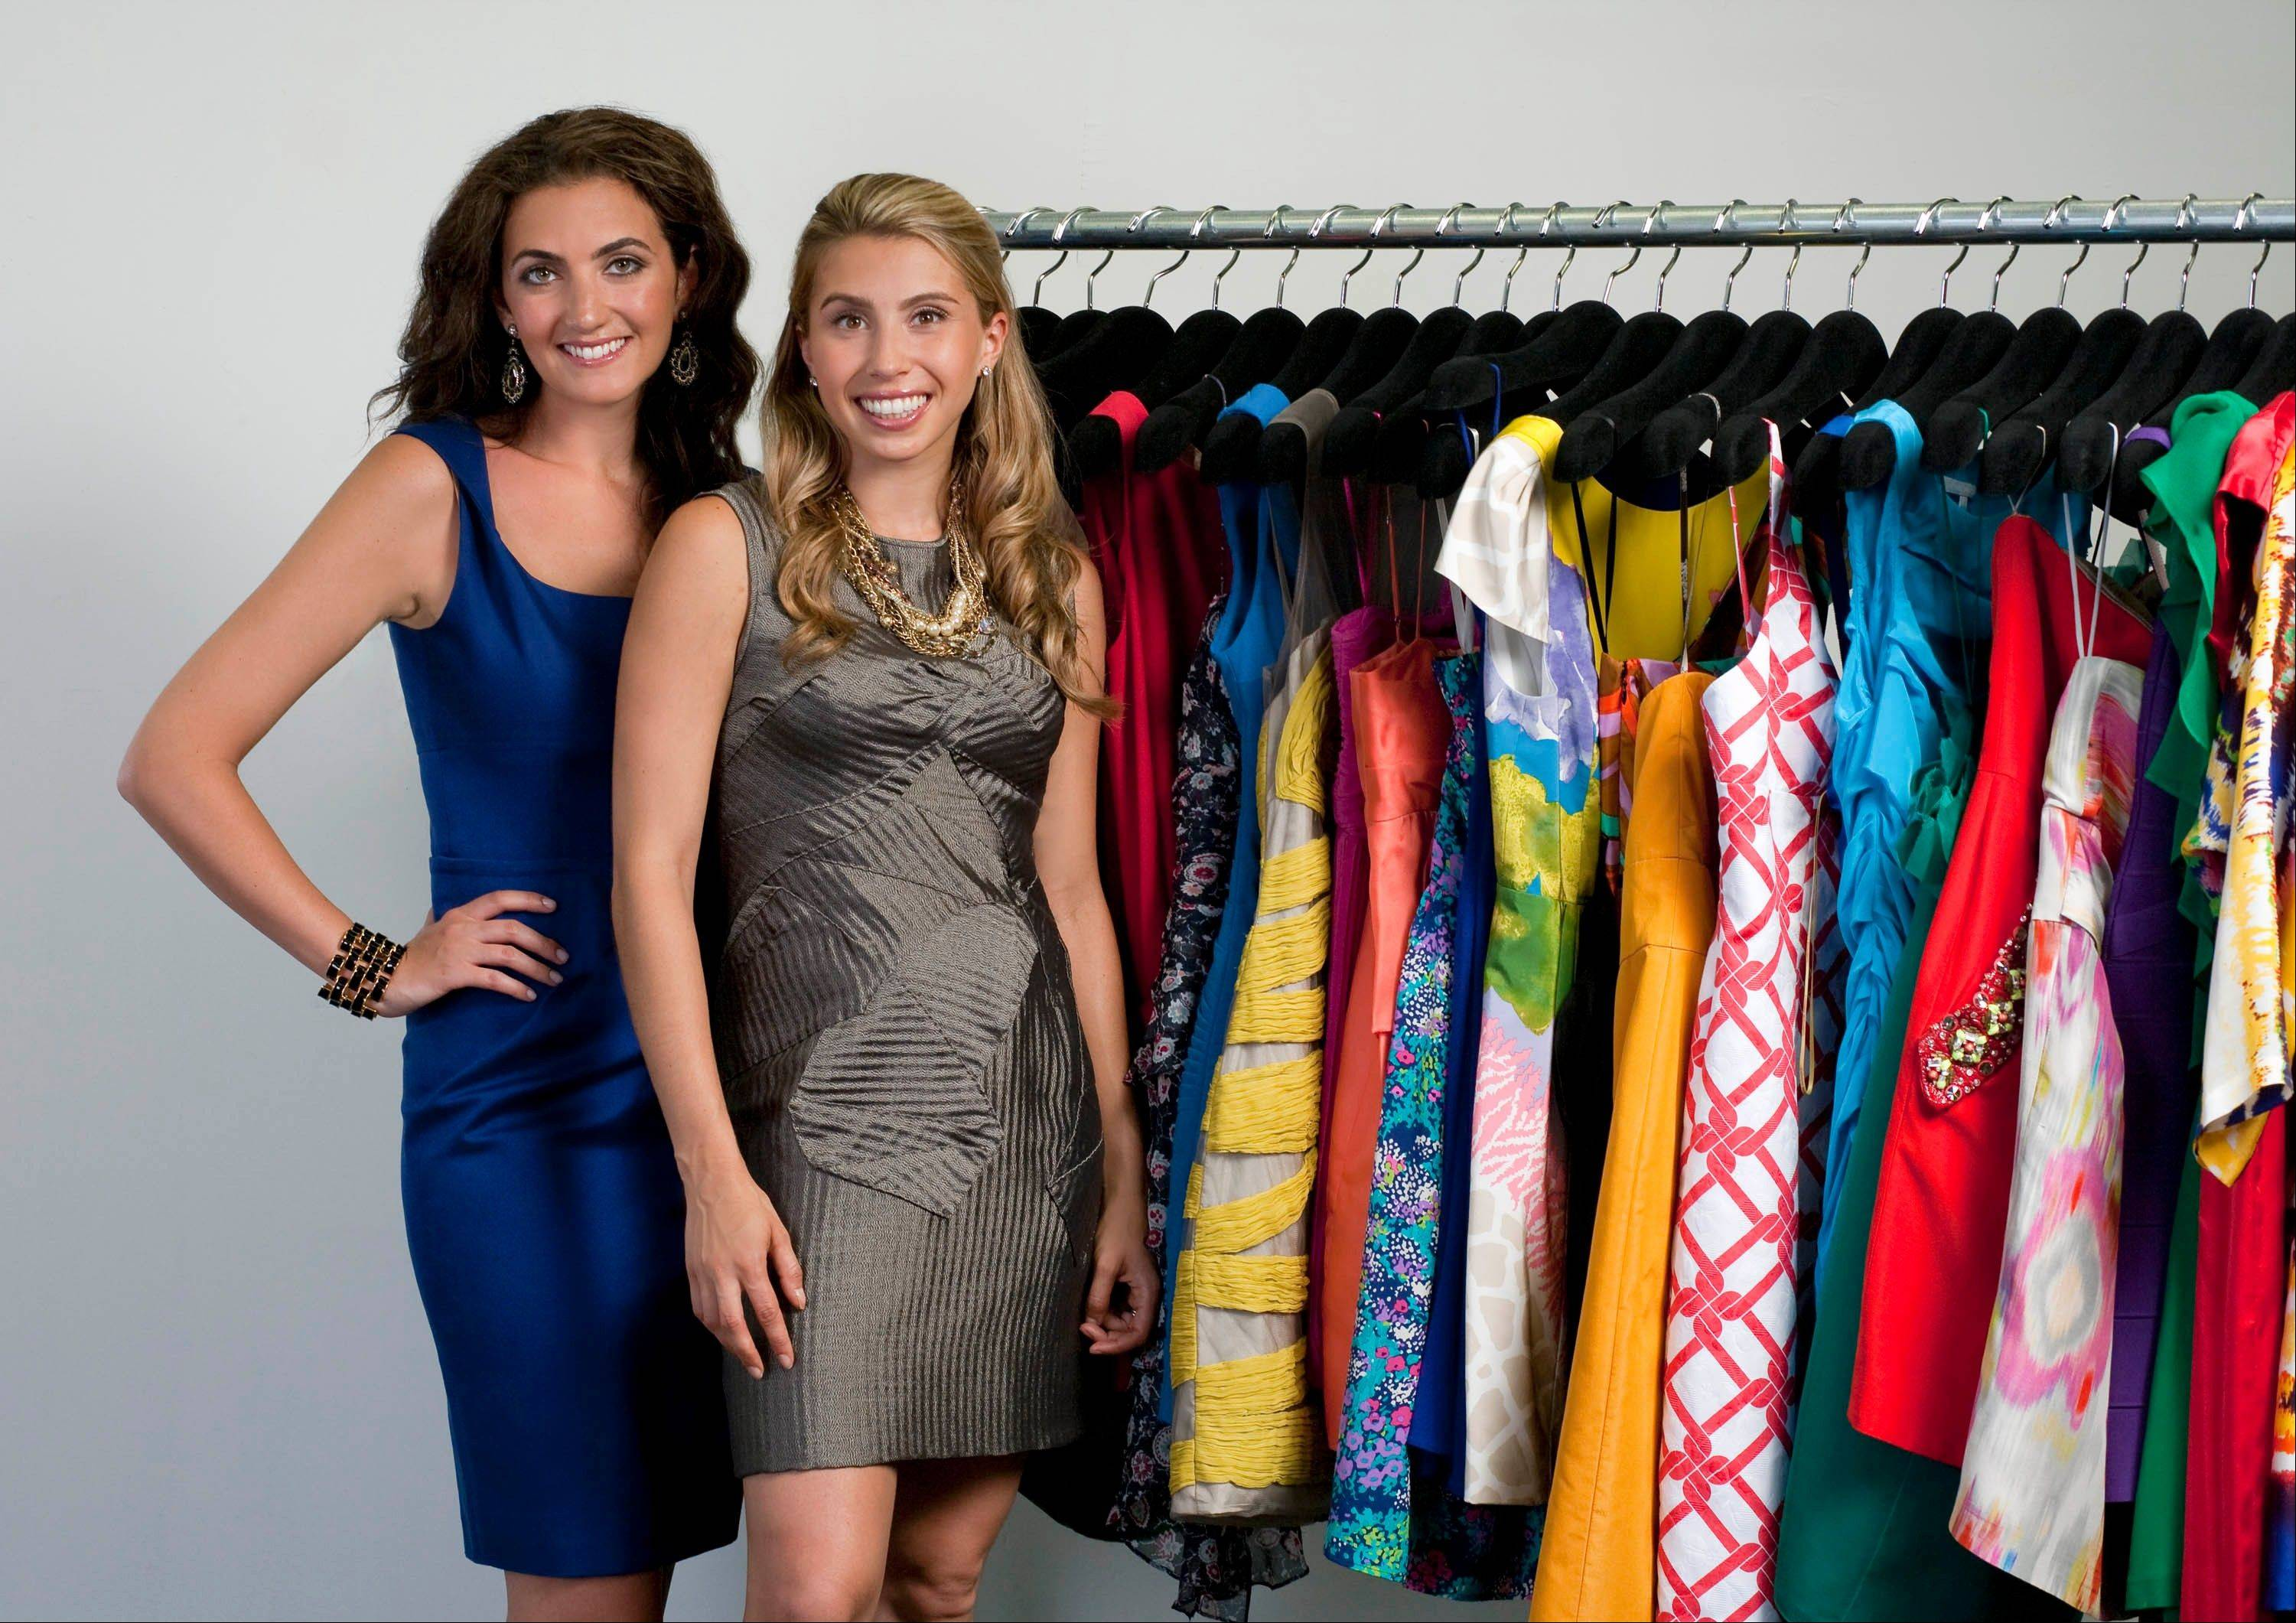 CEO and co-founder of Rent the Runway Jennifer Hyman, left, and co-founder Jenny Fleiss run an online company that allows consumers to borrow, for a fee, designer clothes and accessories.